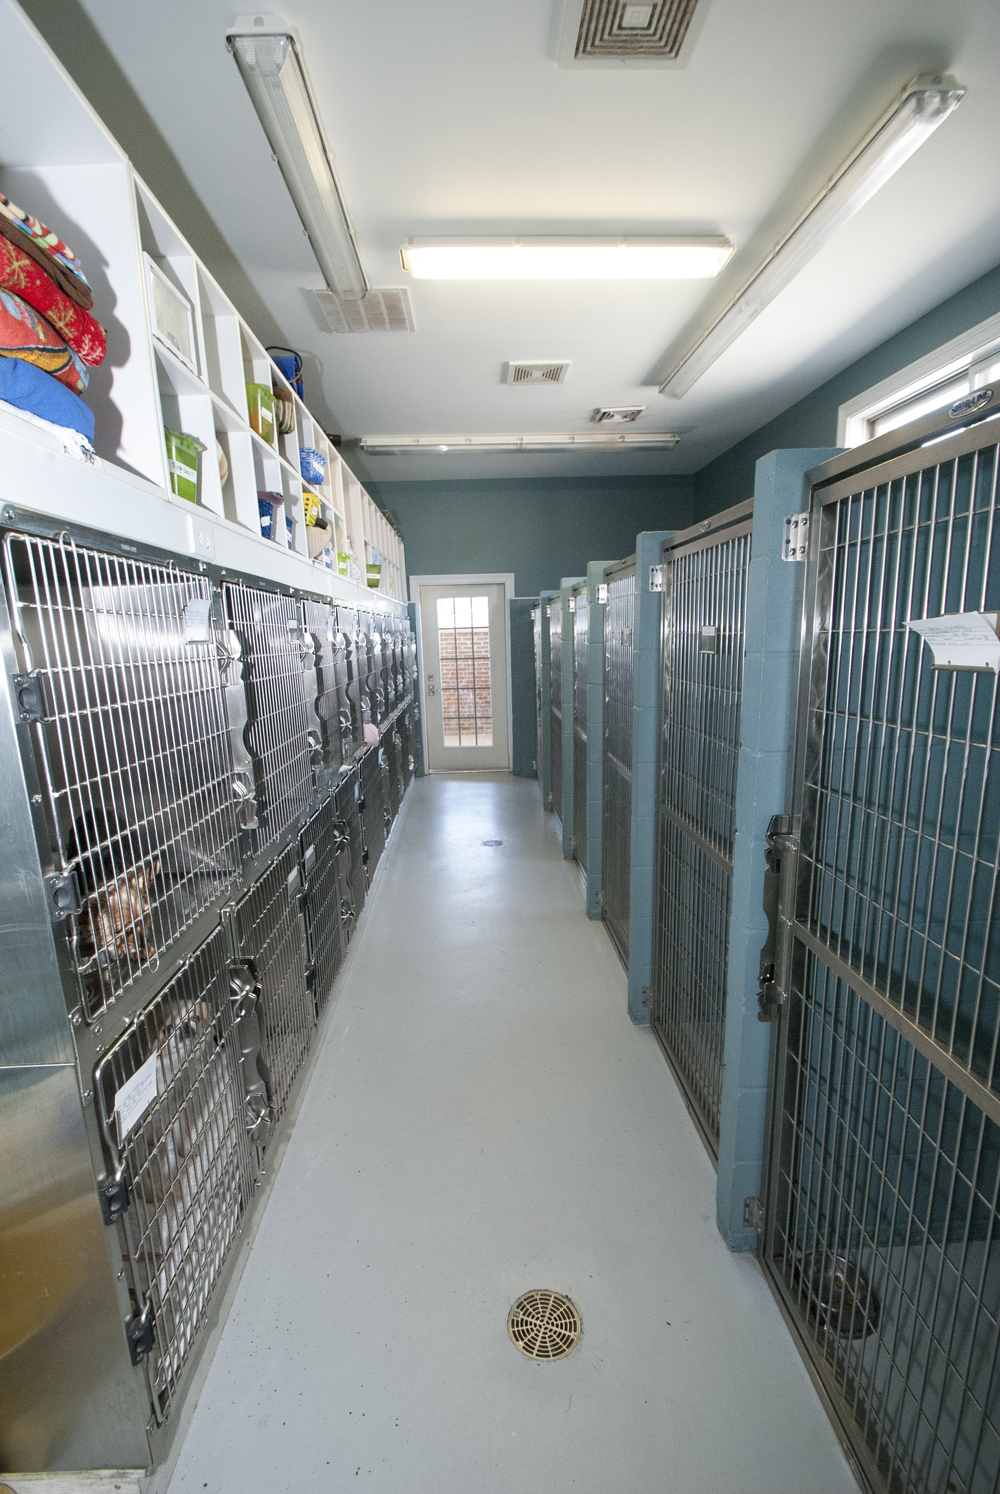 Our facility has 23 dog kennels/Runs and 18 cat Cages.